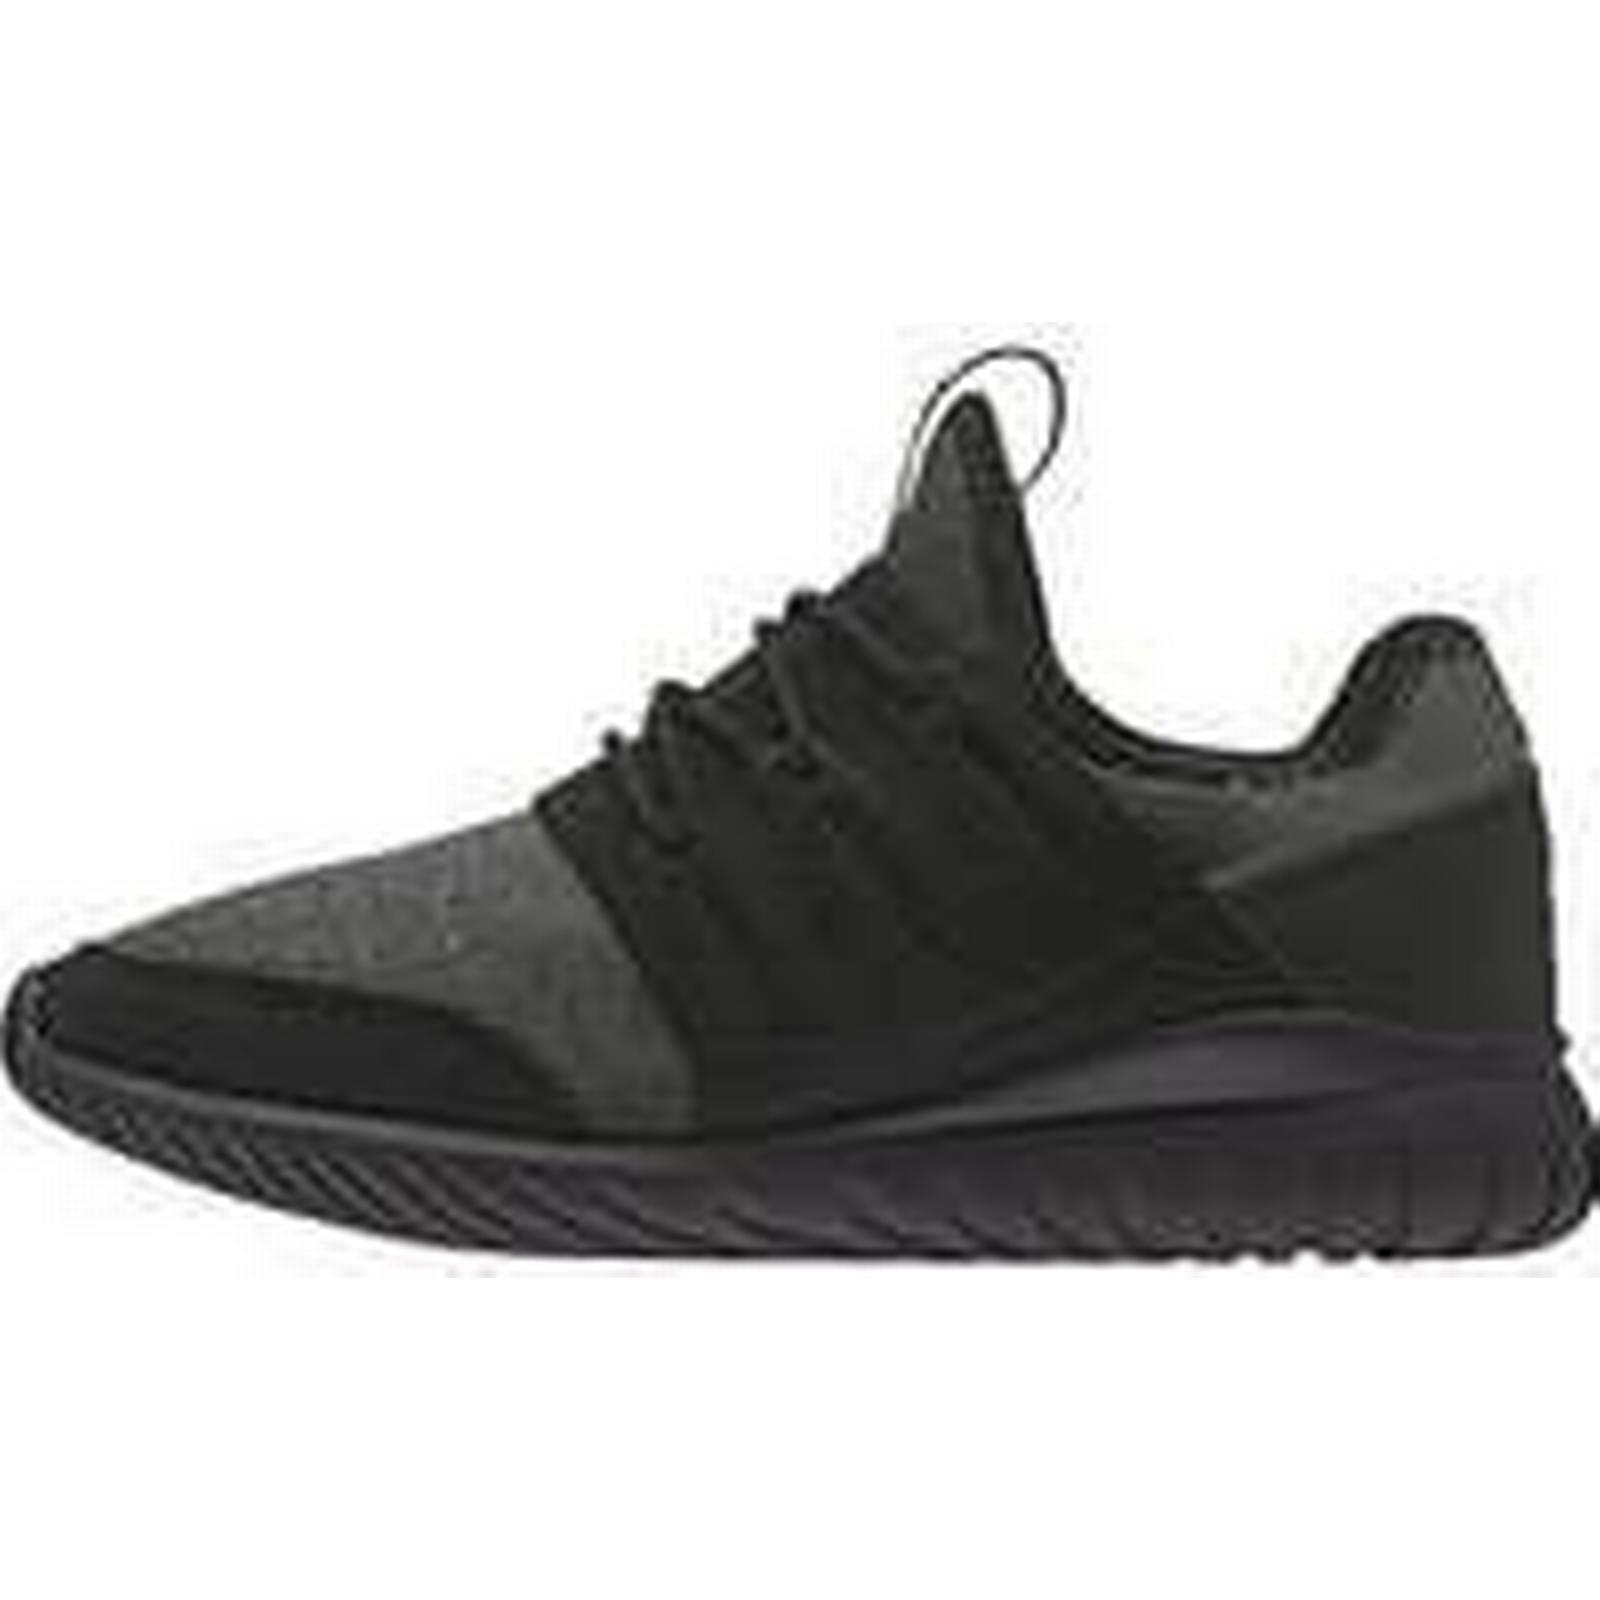 Spartoo.co.uk adidas Tubular (Trainers) Radial J men's Shoes (Trainers) Tubular in Black 872848